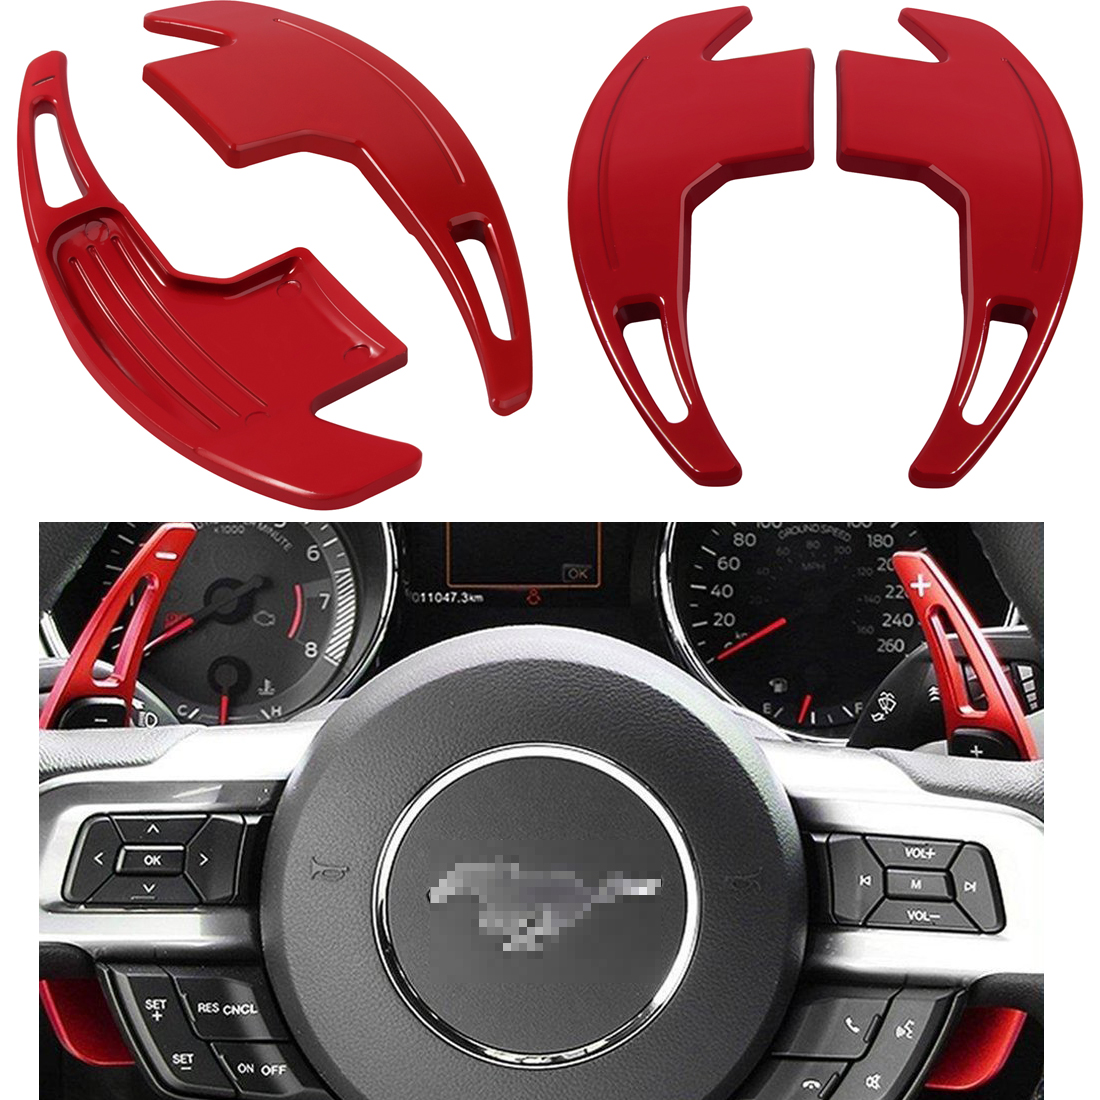 2pcs Steering Shift Paddle Shifter Extension Interior For Ford Mustang 2015-2018